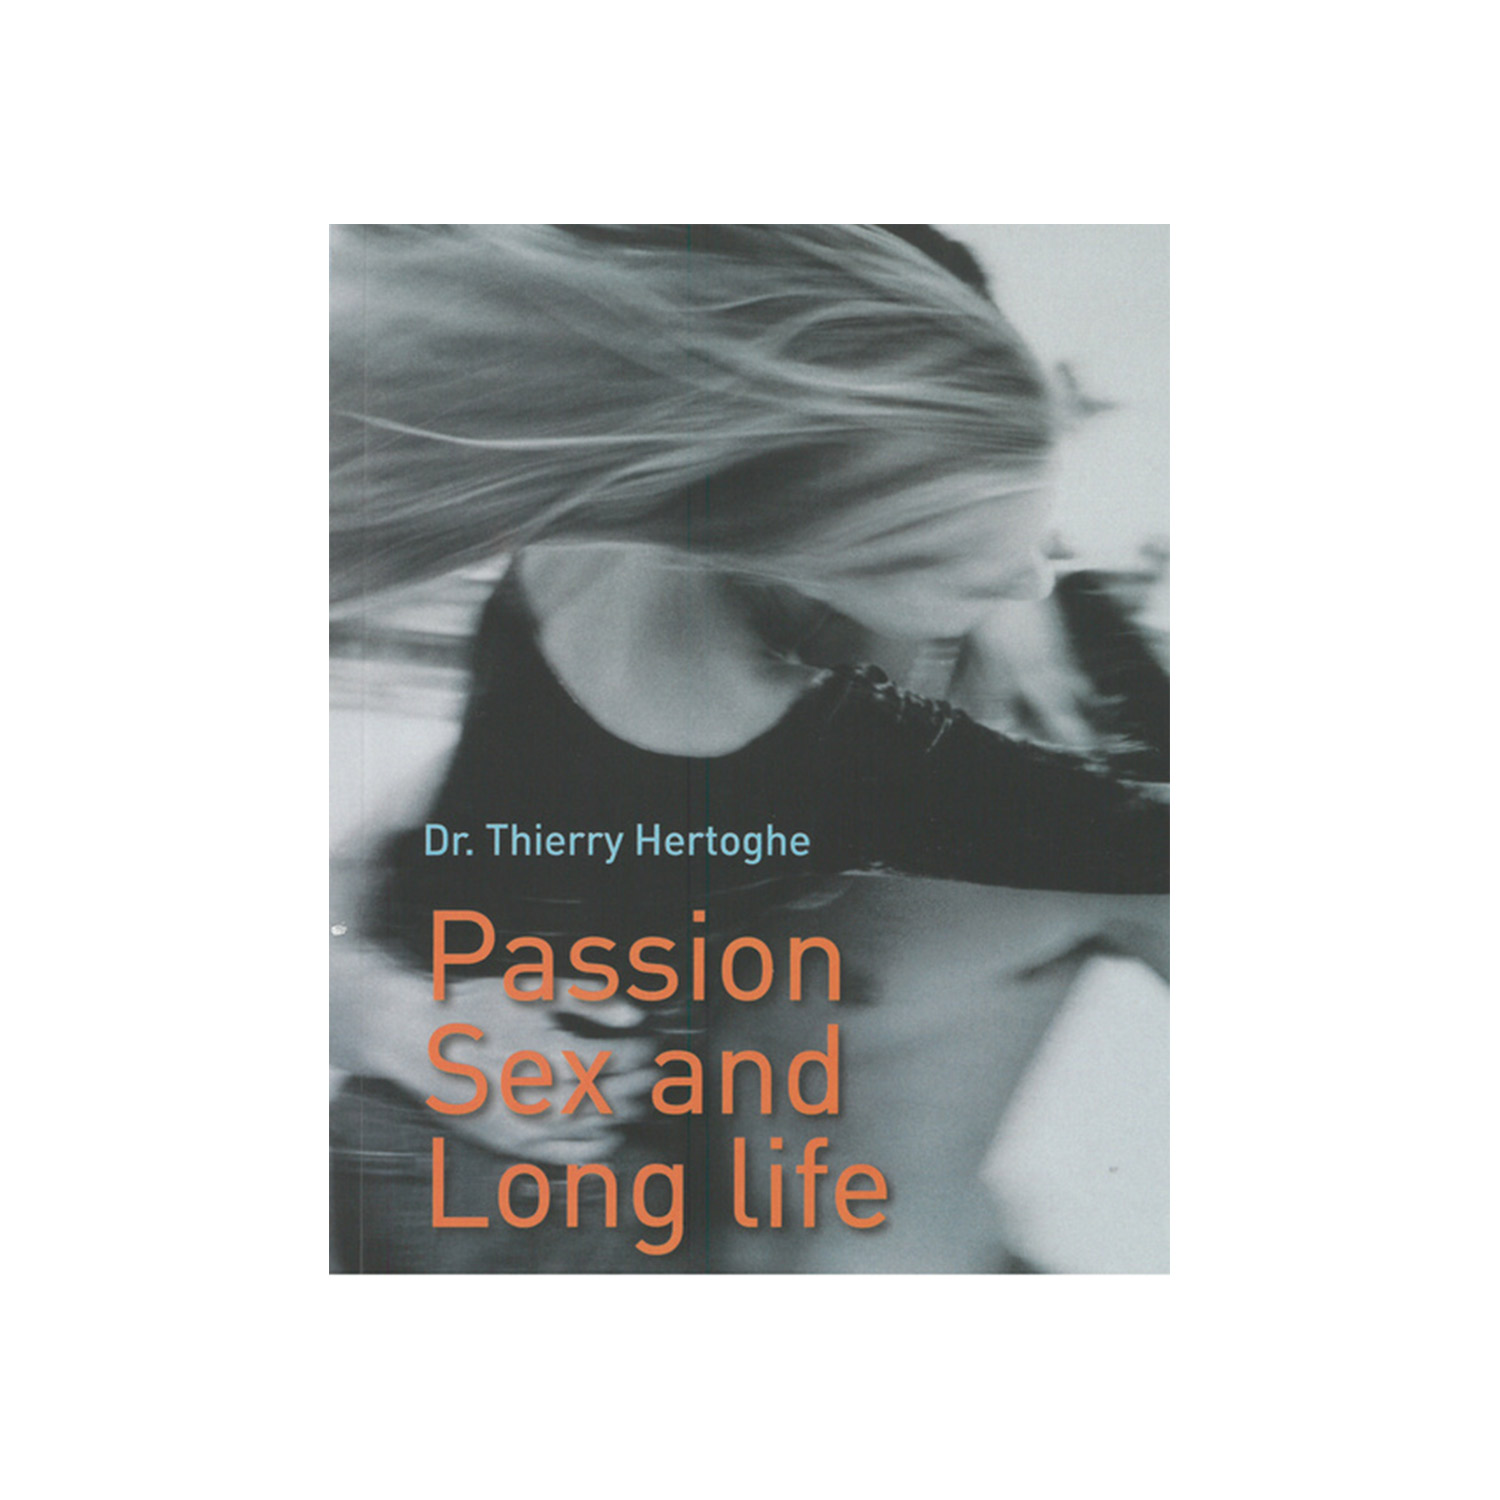 Passion Sex Long Life the Oxytocin adventure 159 page book by Thierry Hertoghe MD